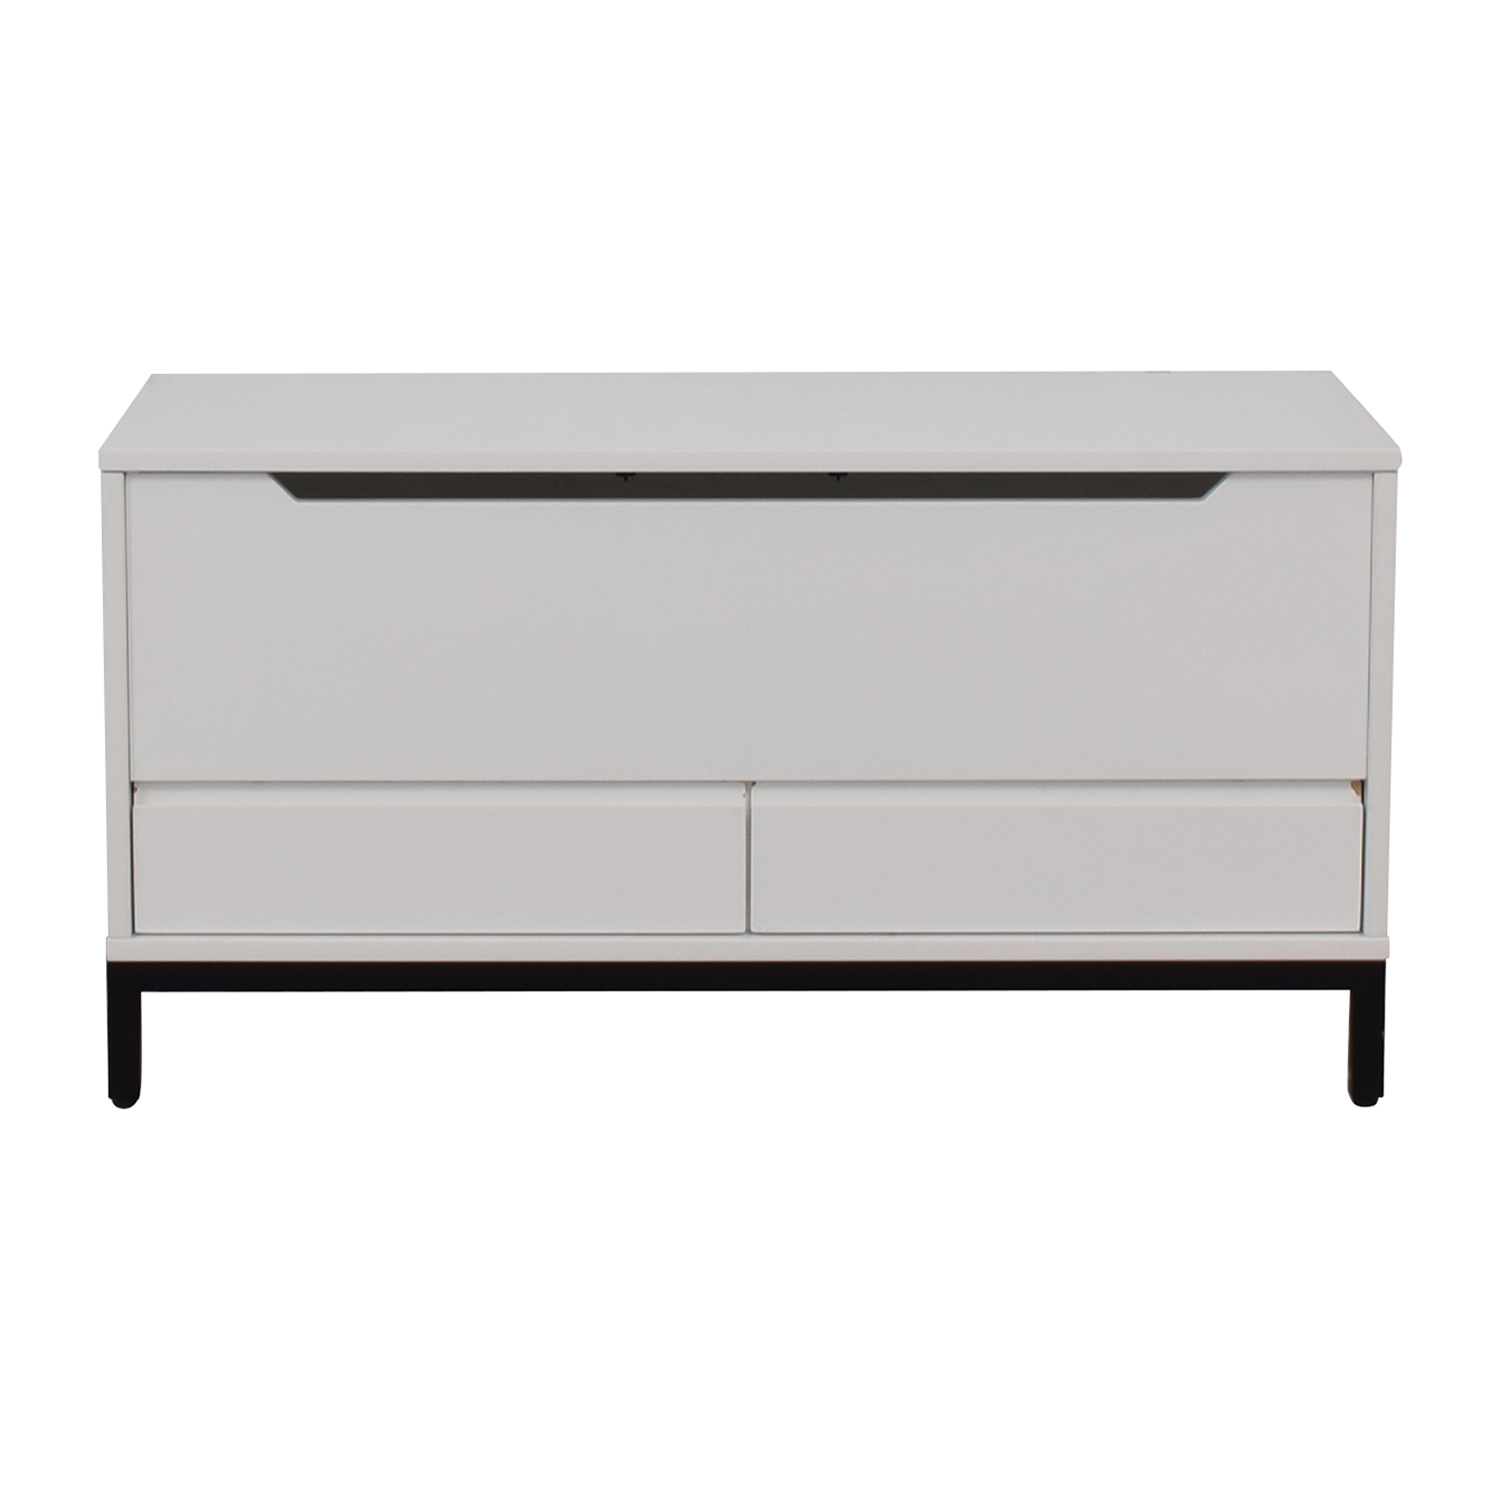 Land of Nod White Two-Drawer Storage Bench sale